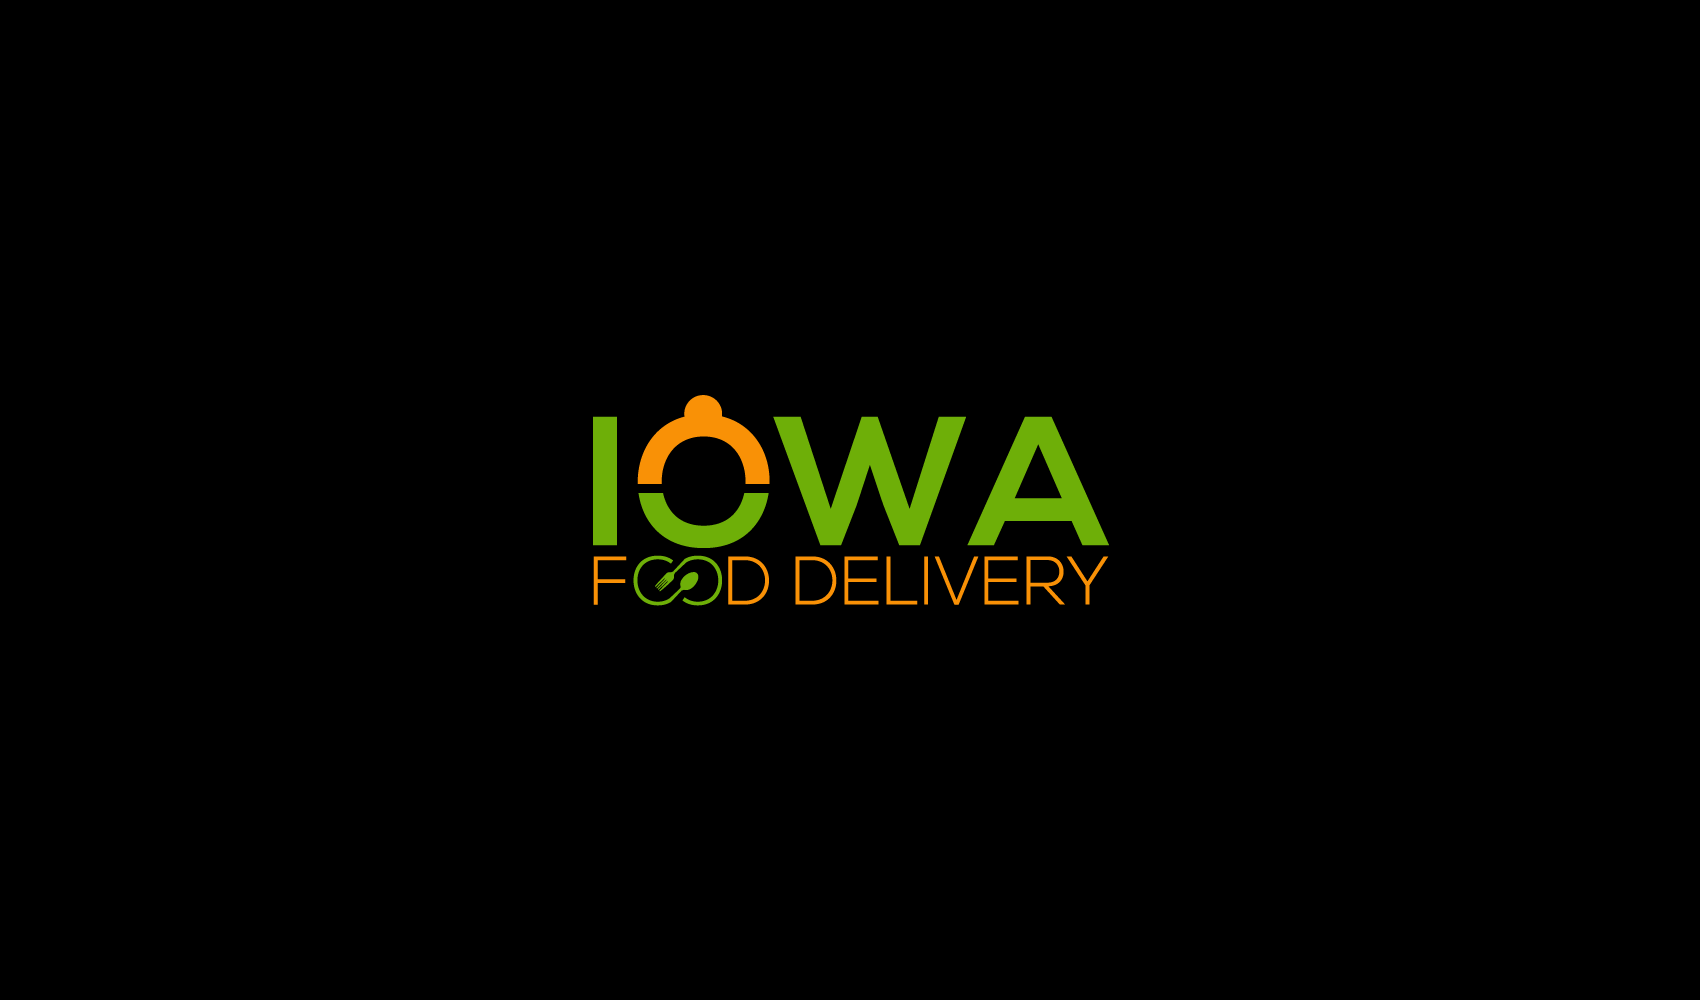 Driver - Iowa Food Delivery